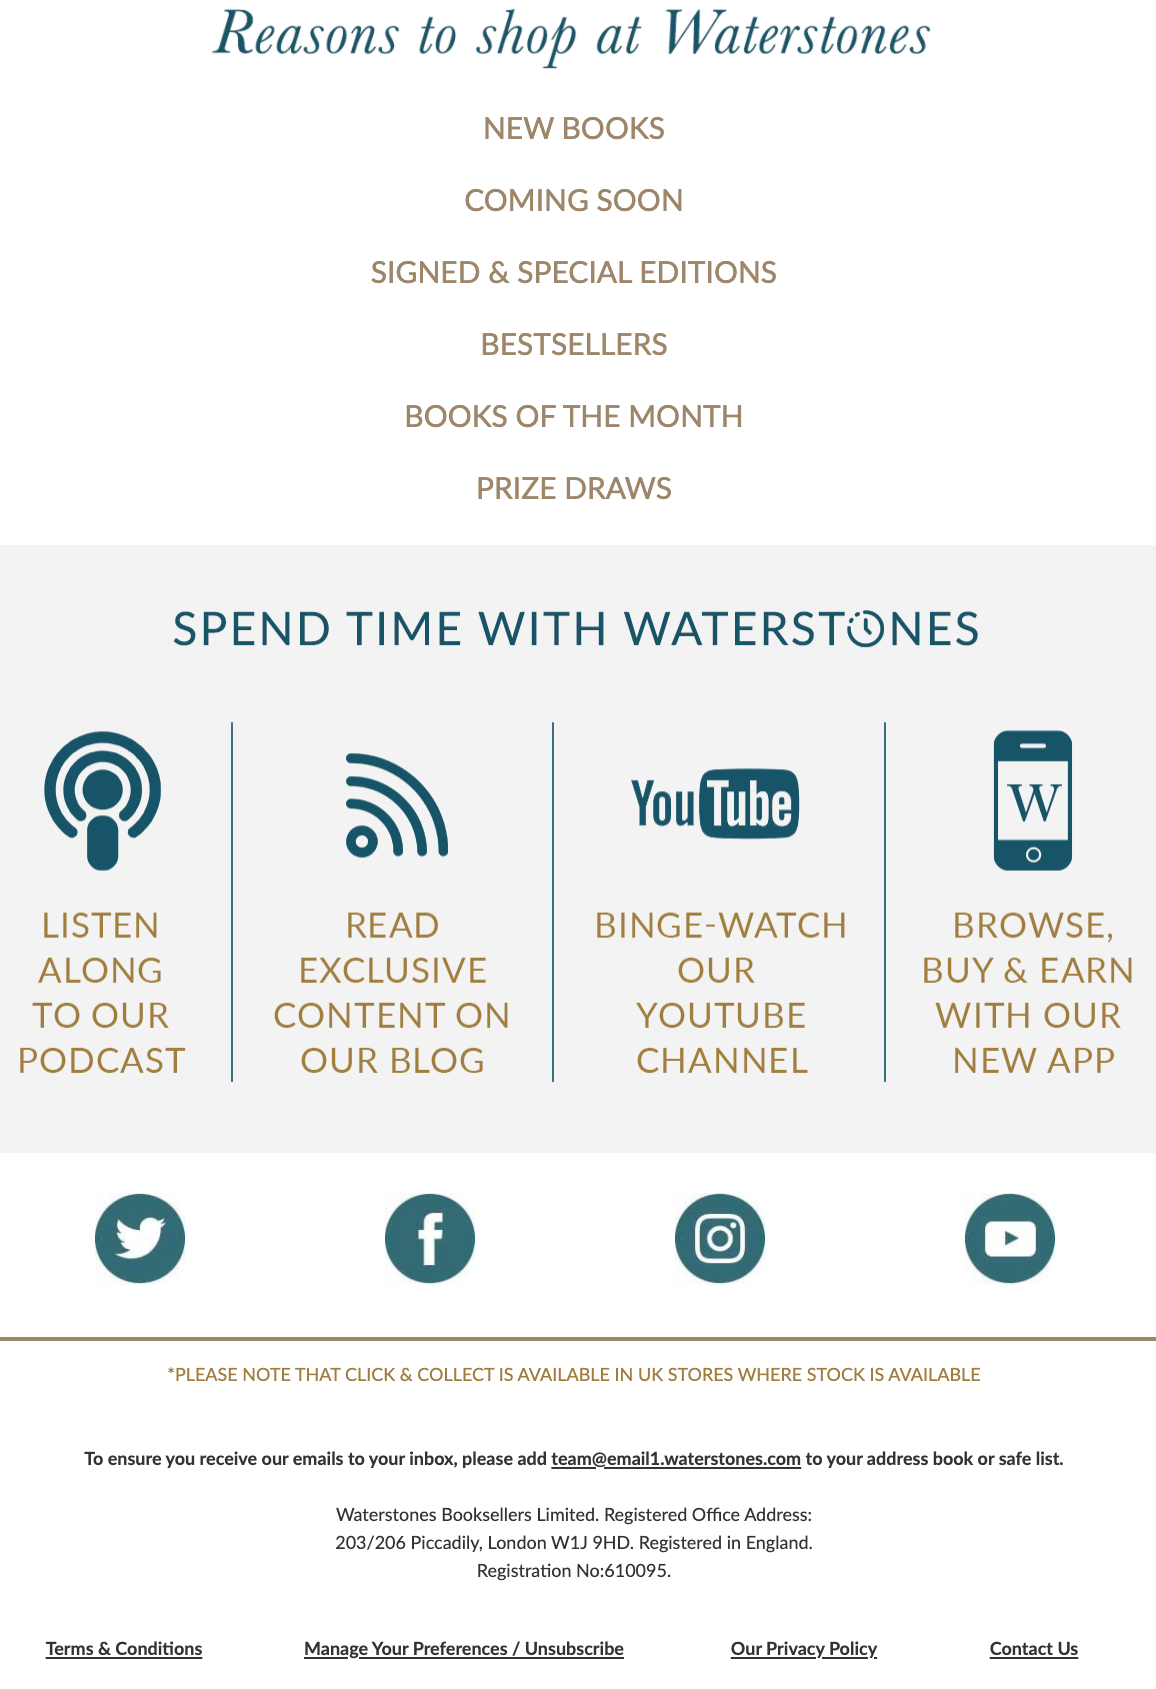 Image of an email campaign by Waterstones with links to their social media in the footer.